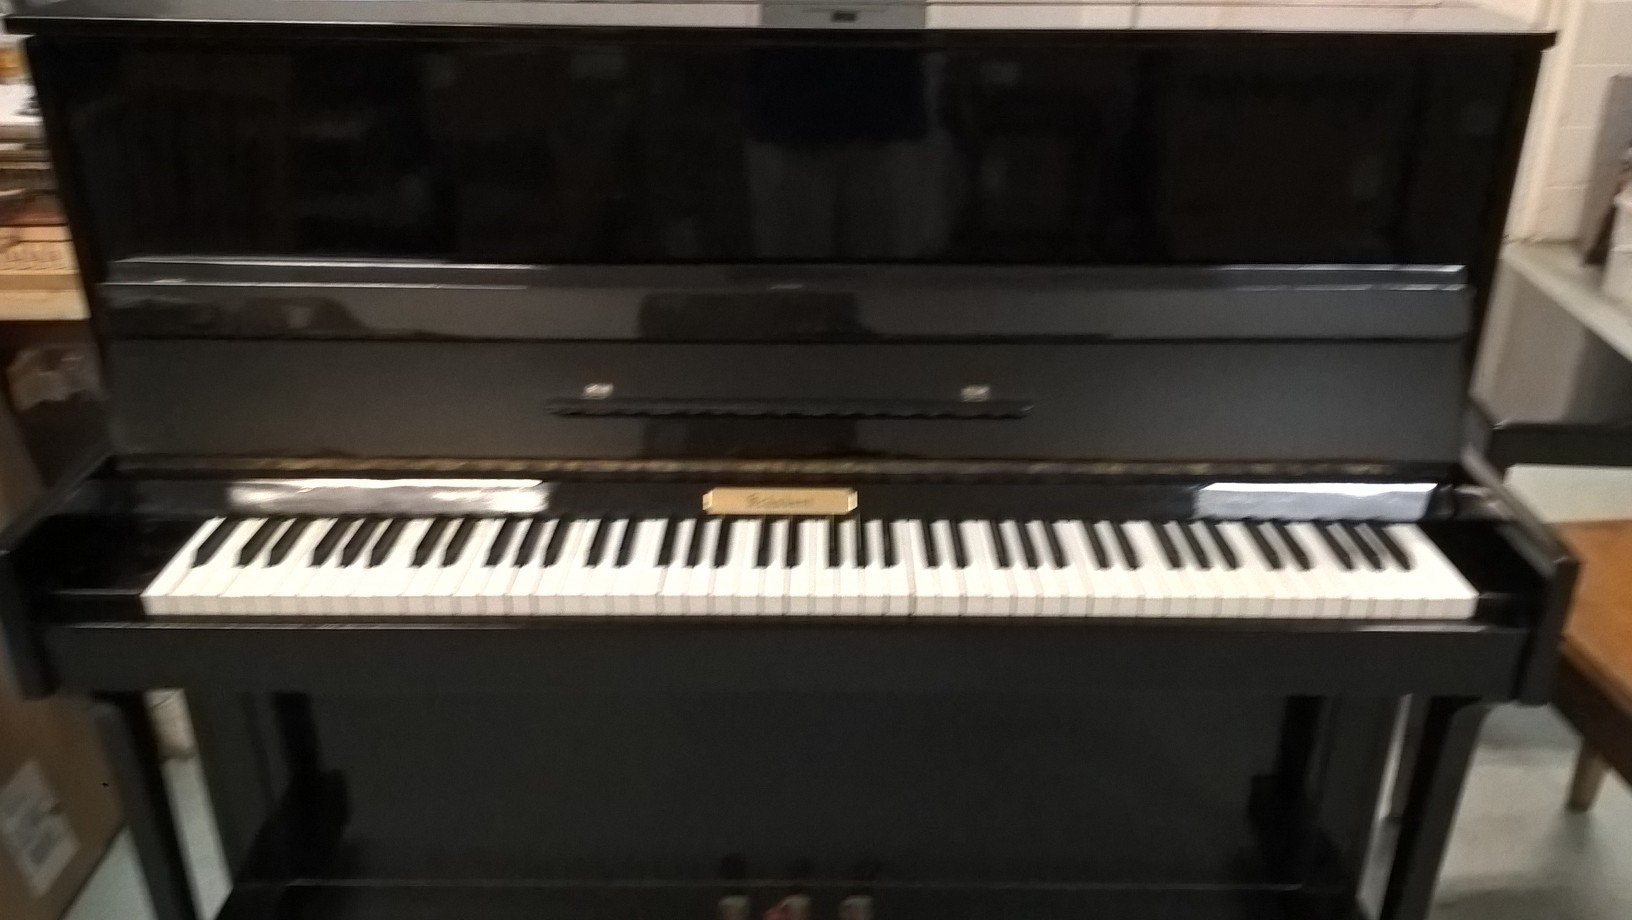 Schubert used upright piano